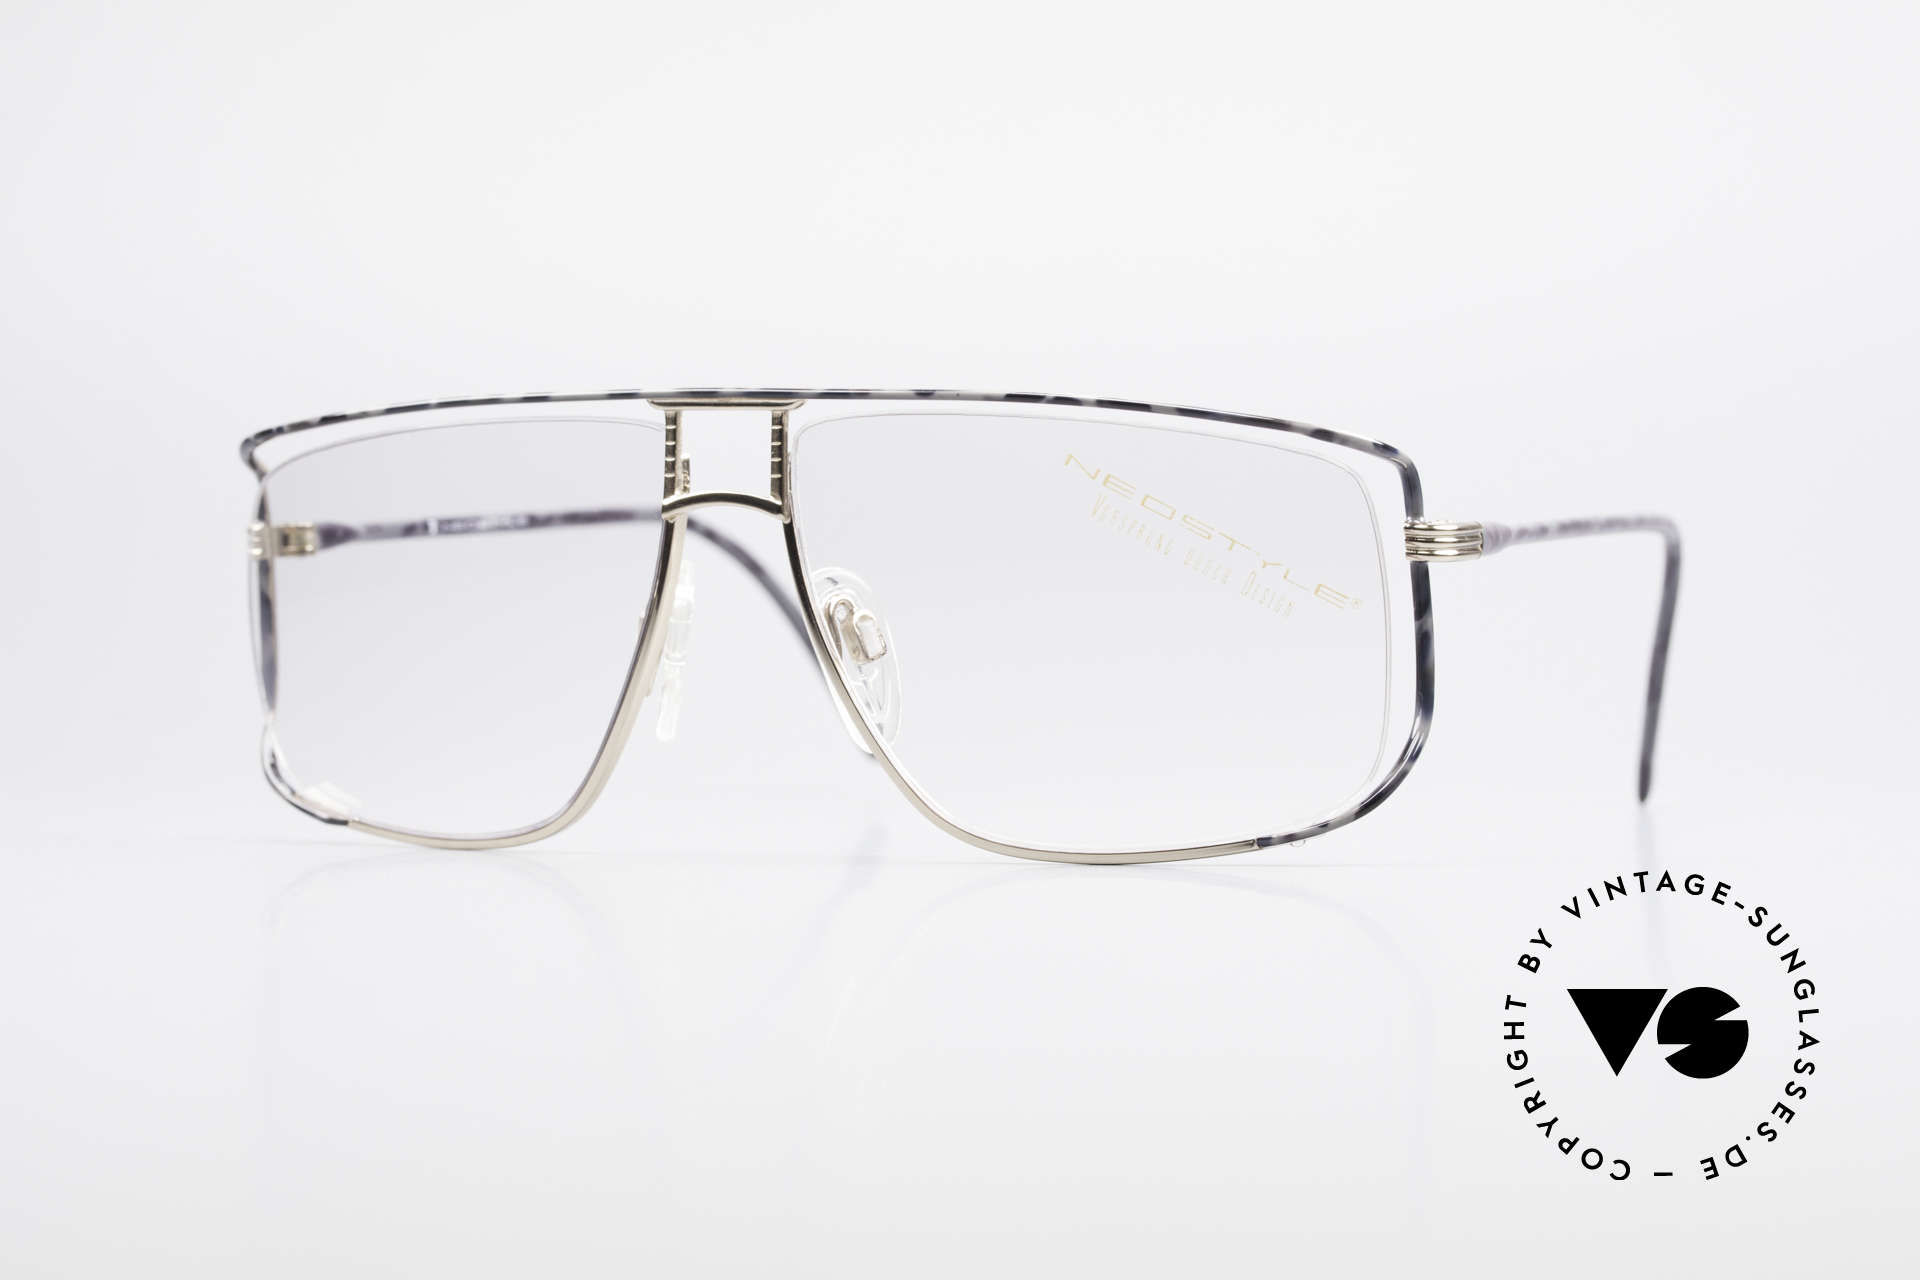 Neostyle Jet 30 Small True Vintage No Retro Frame, distinctive designer eyeglasses by Neostyle, Germany, Made for Men and Women